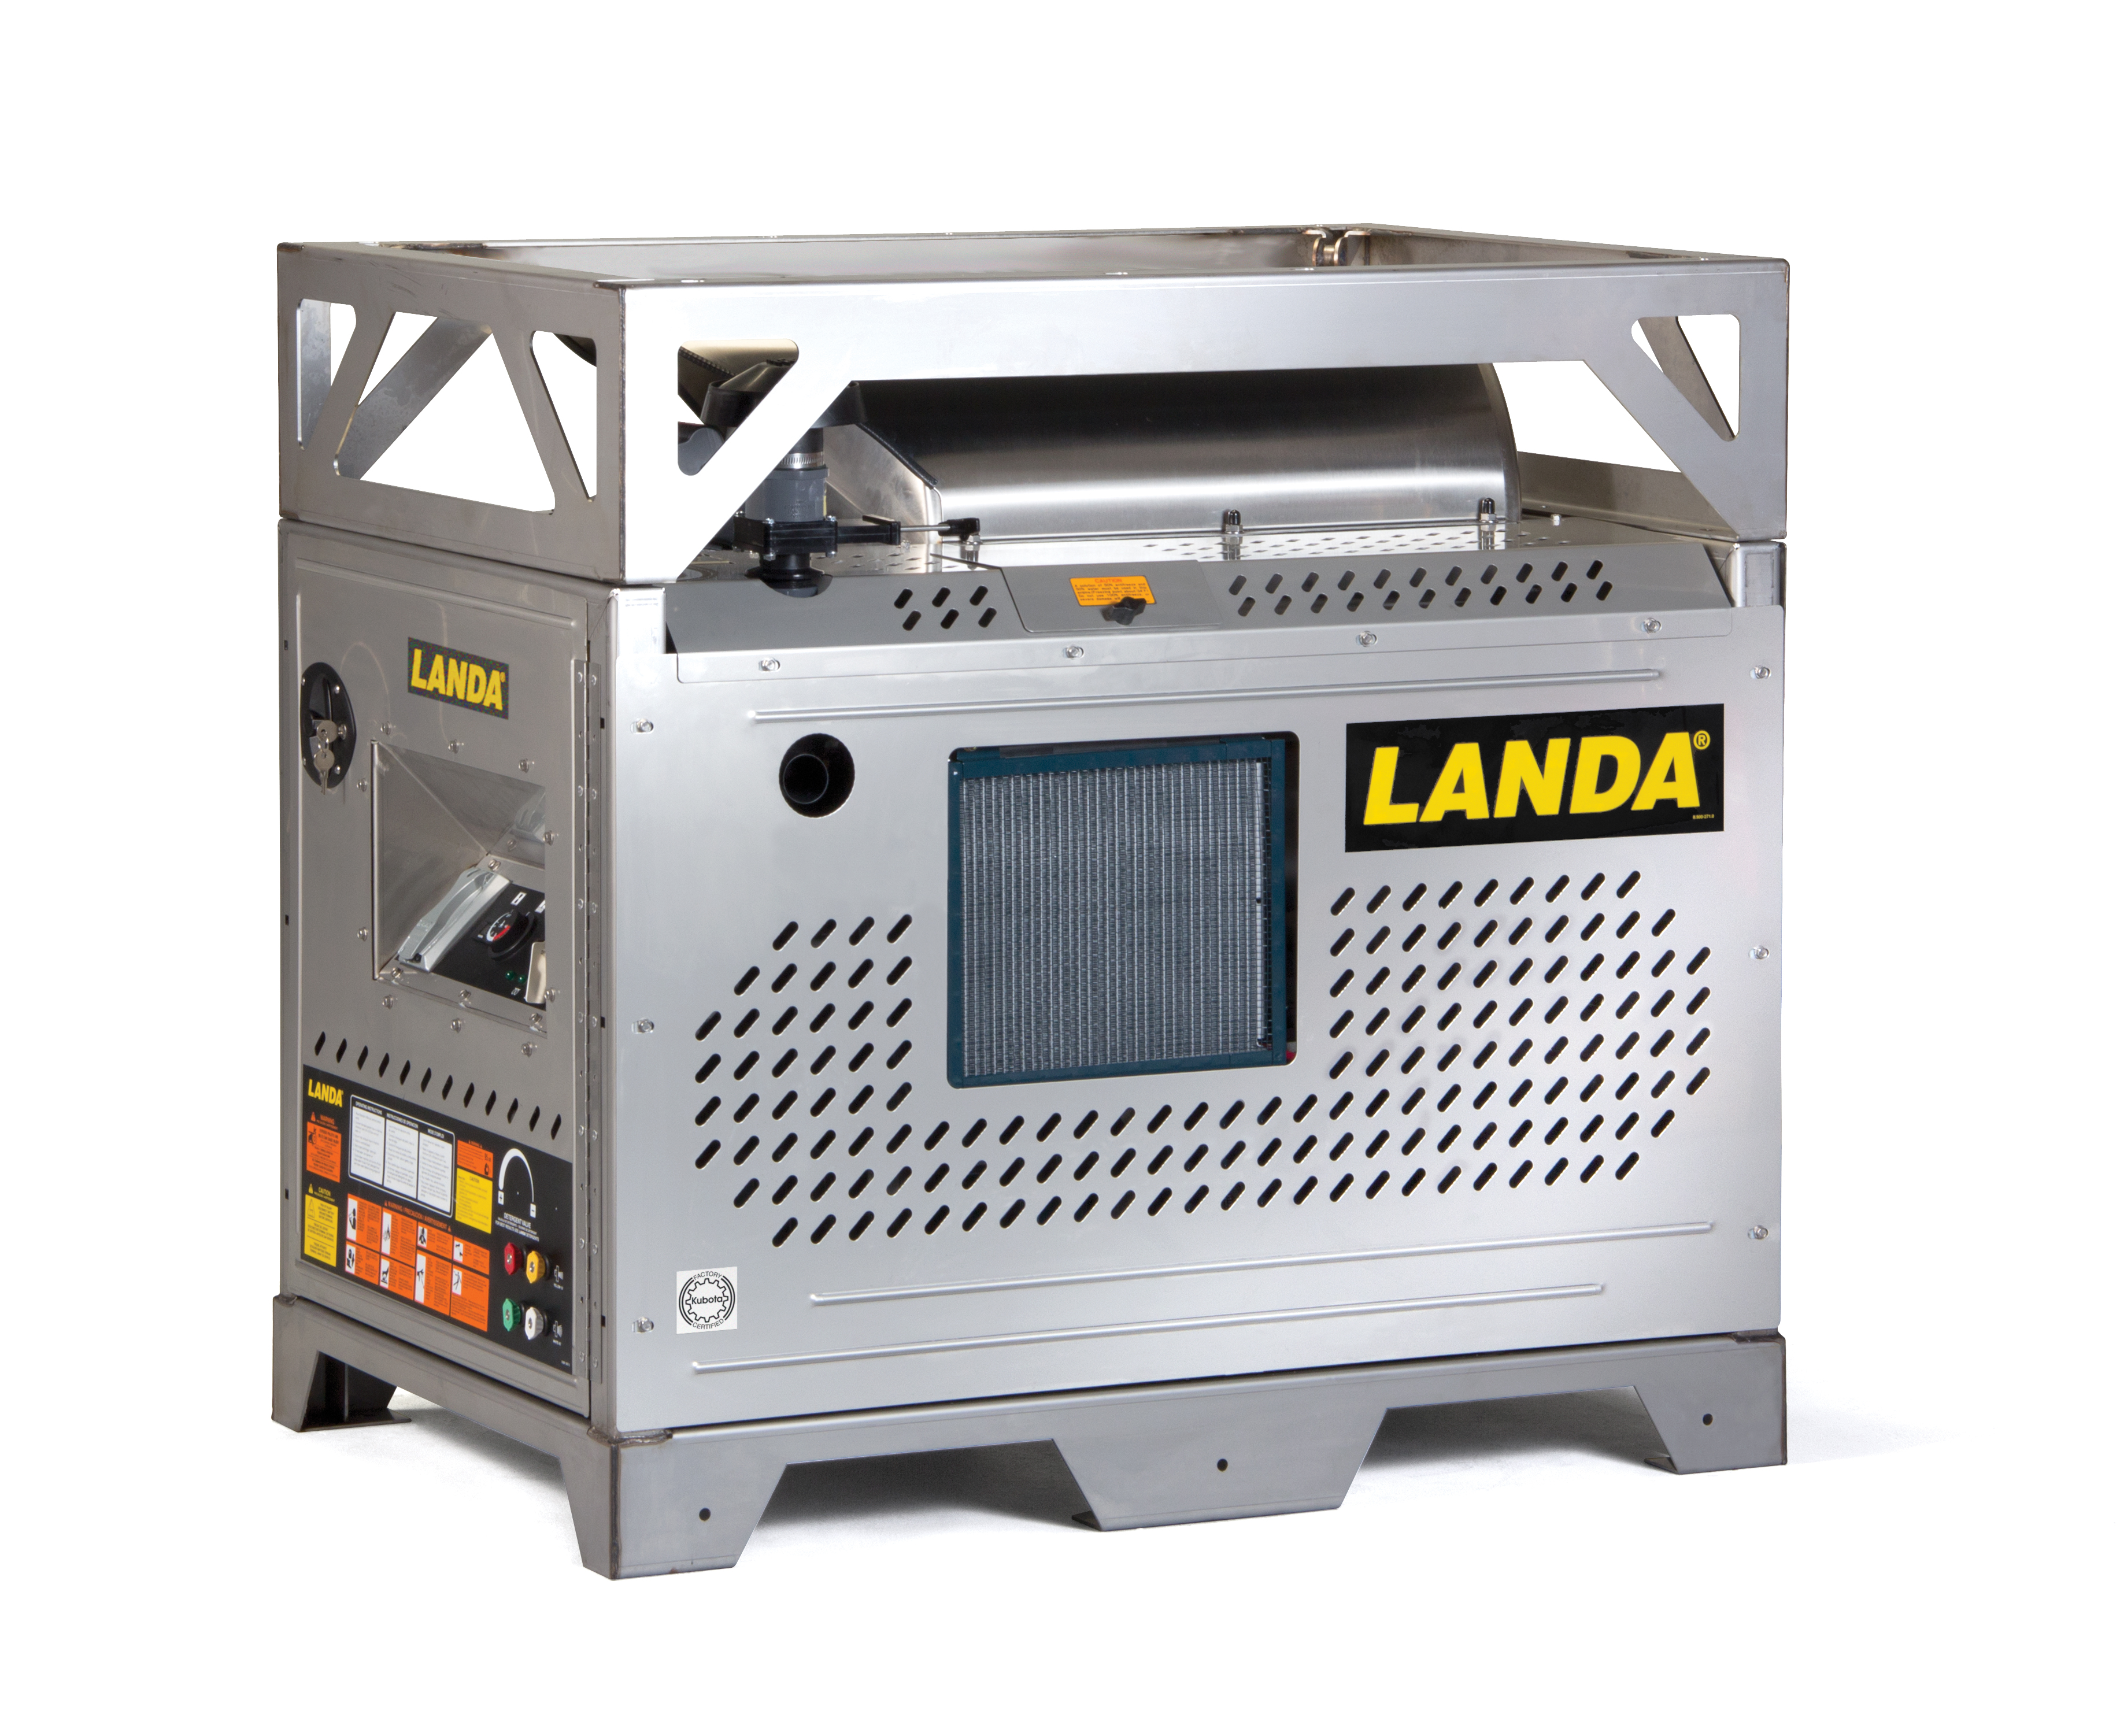 Landa Oil Fired Hot Water Pressure Washer PDHW5-35624E/G/SS